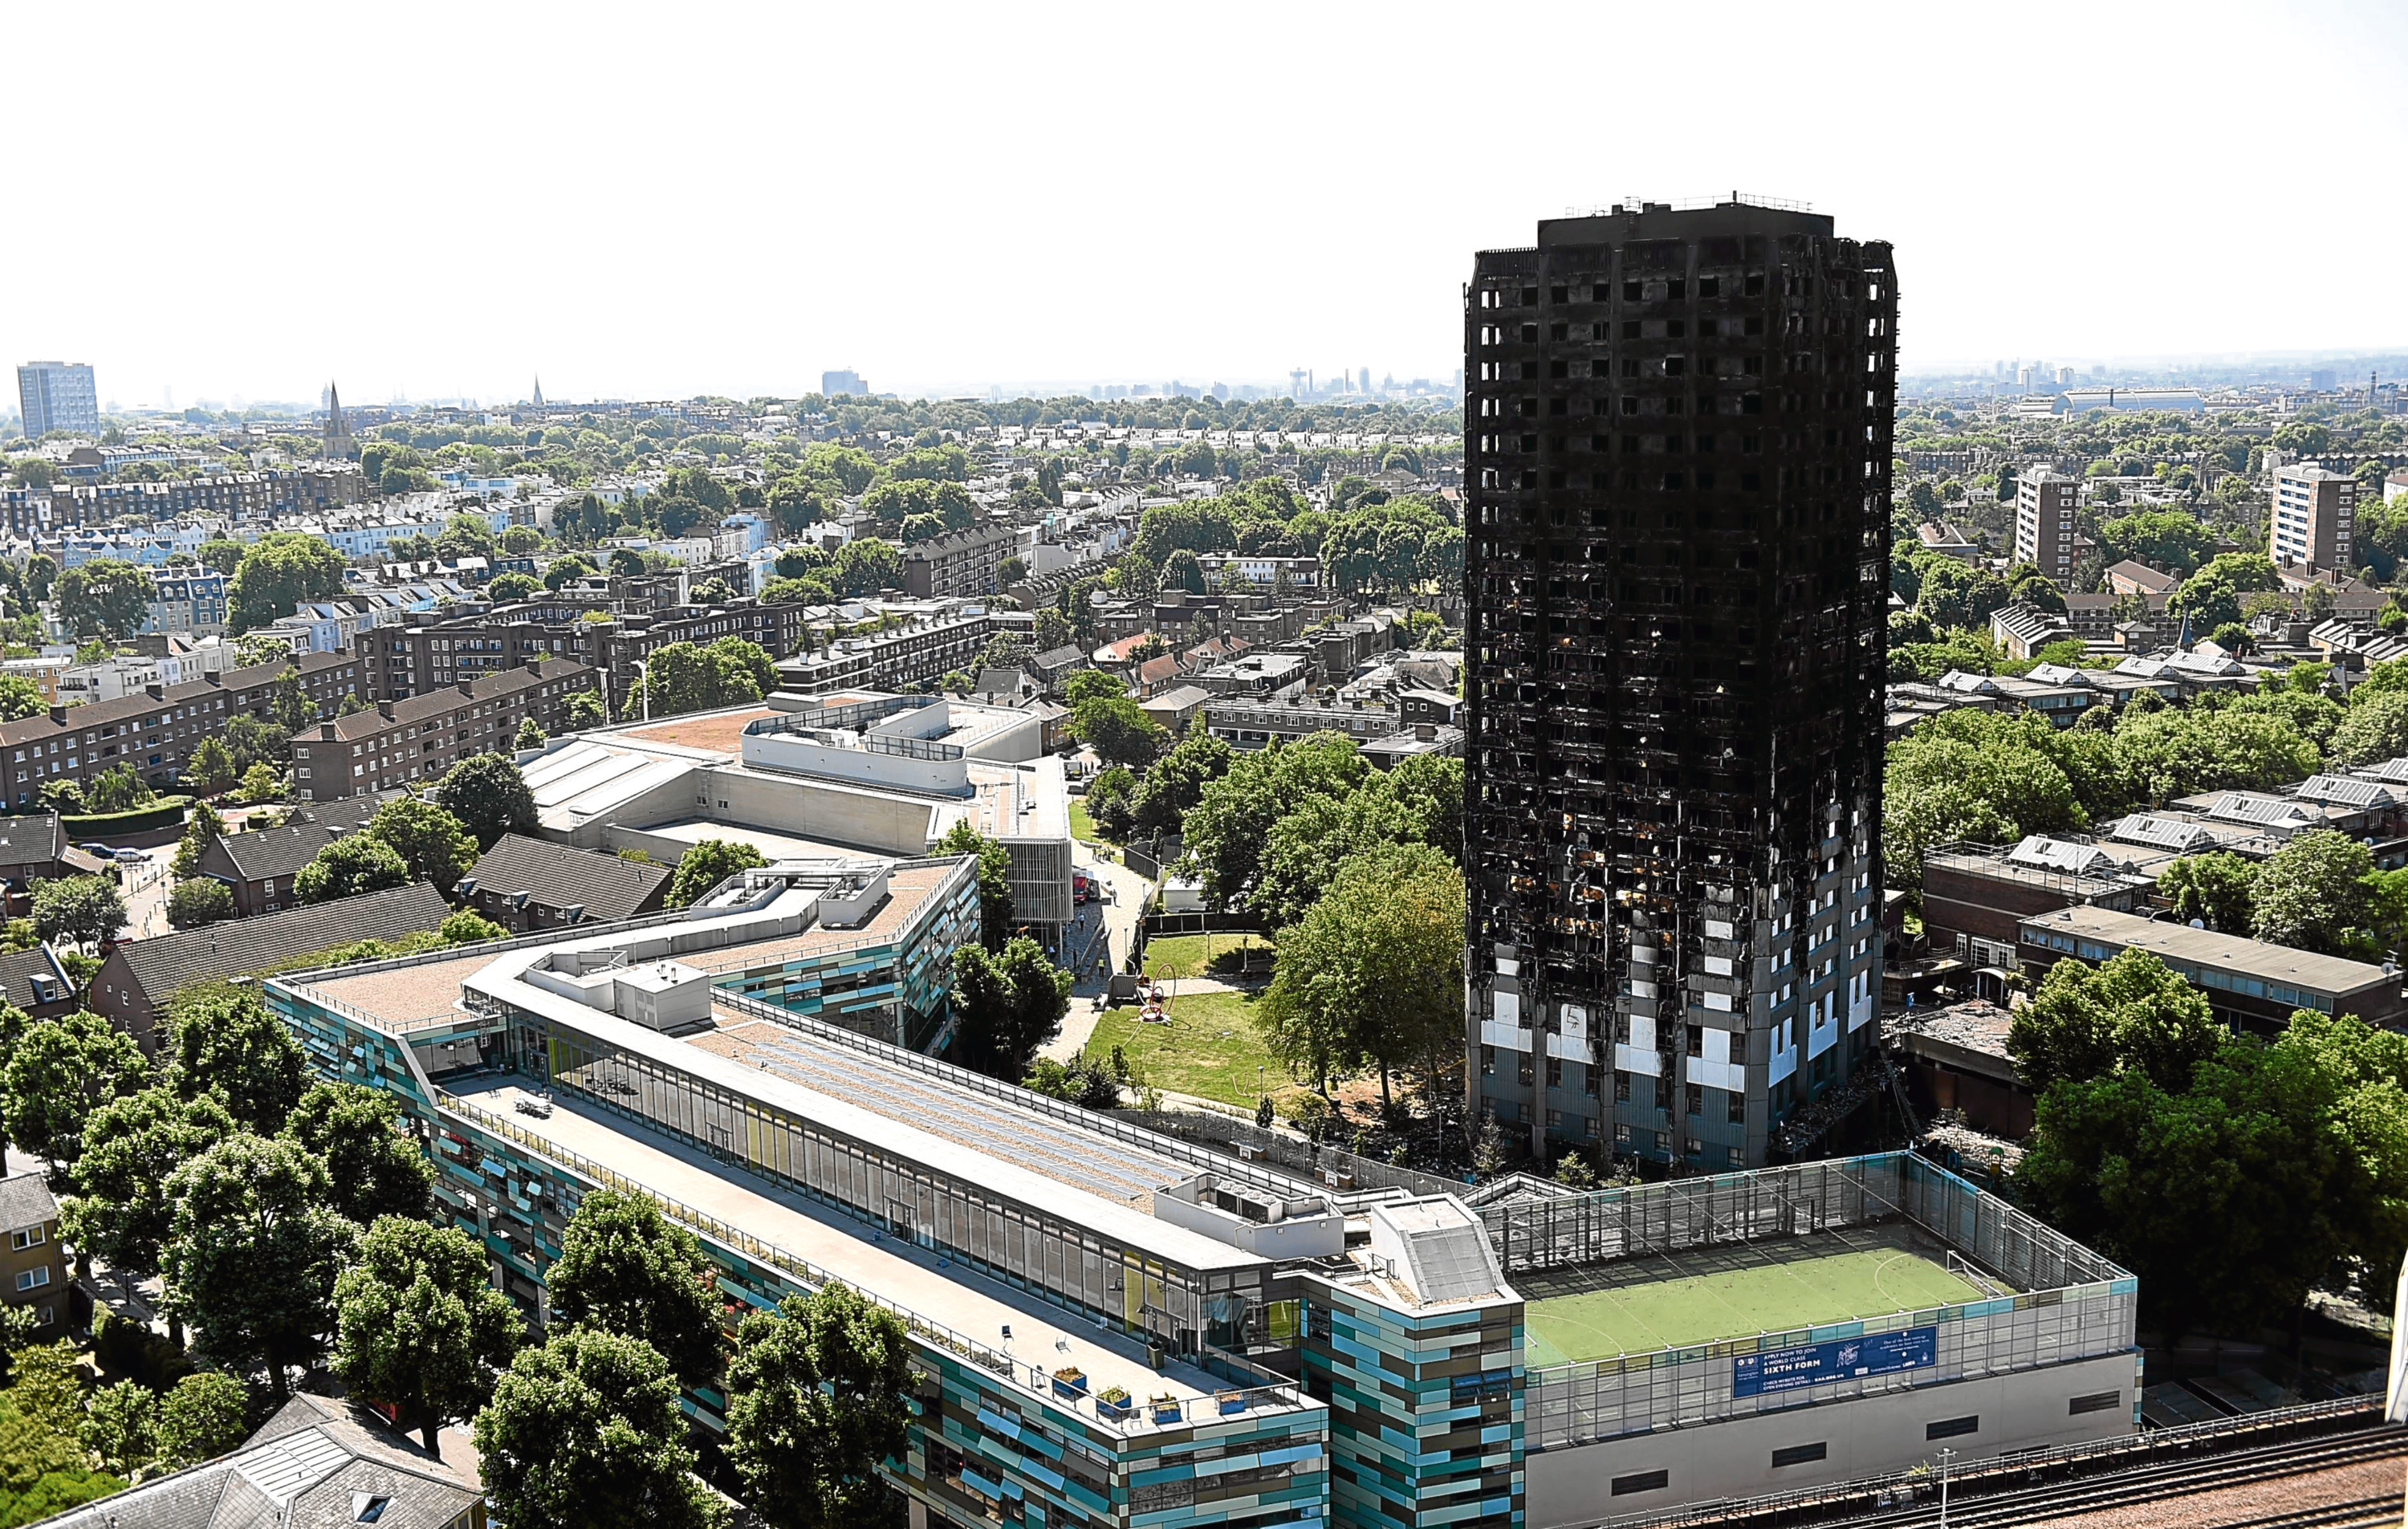 The remnants of Grenfell Tower after the blaze.